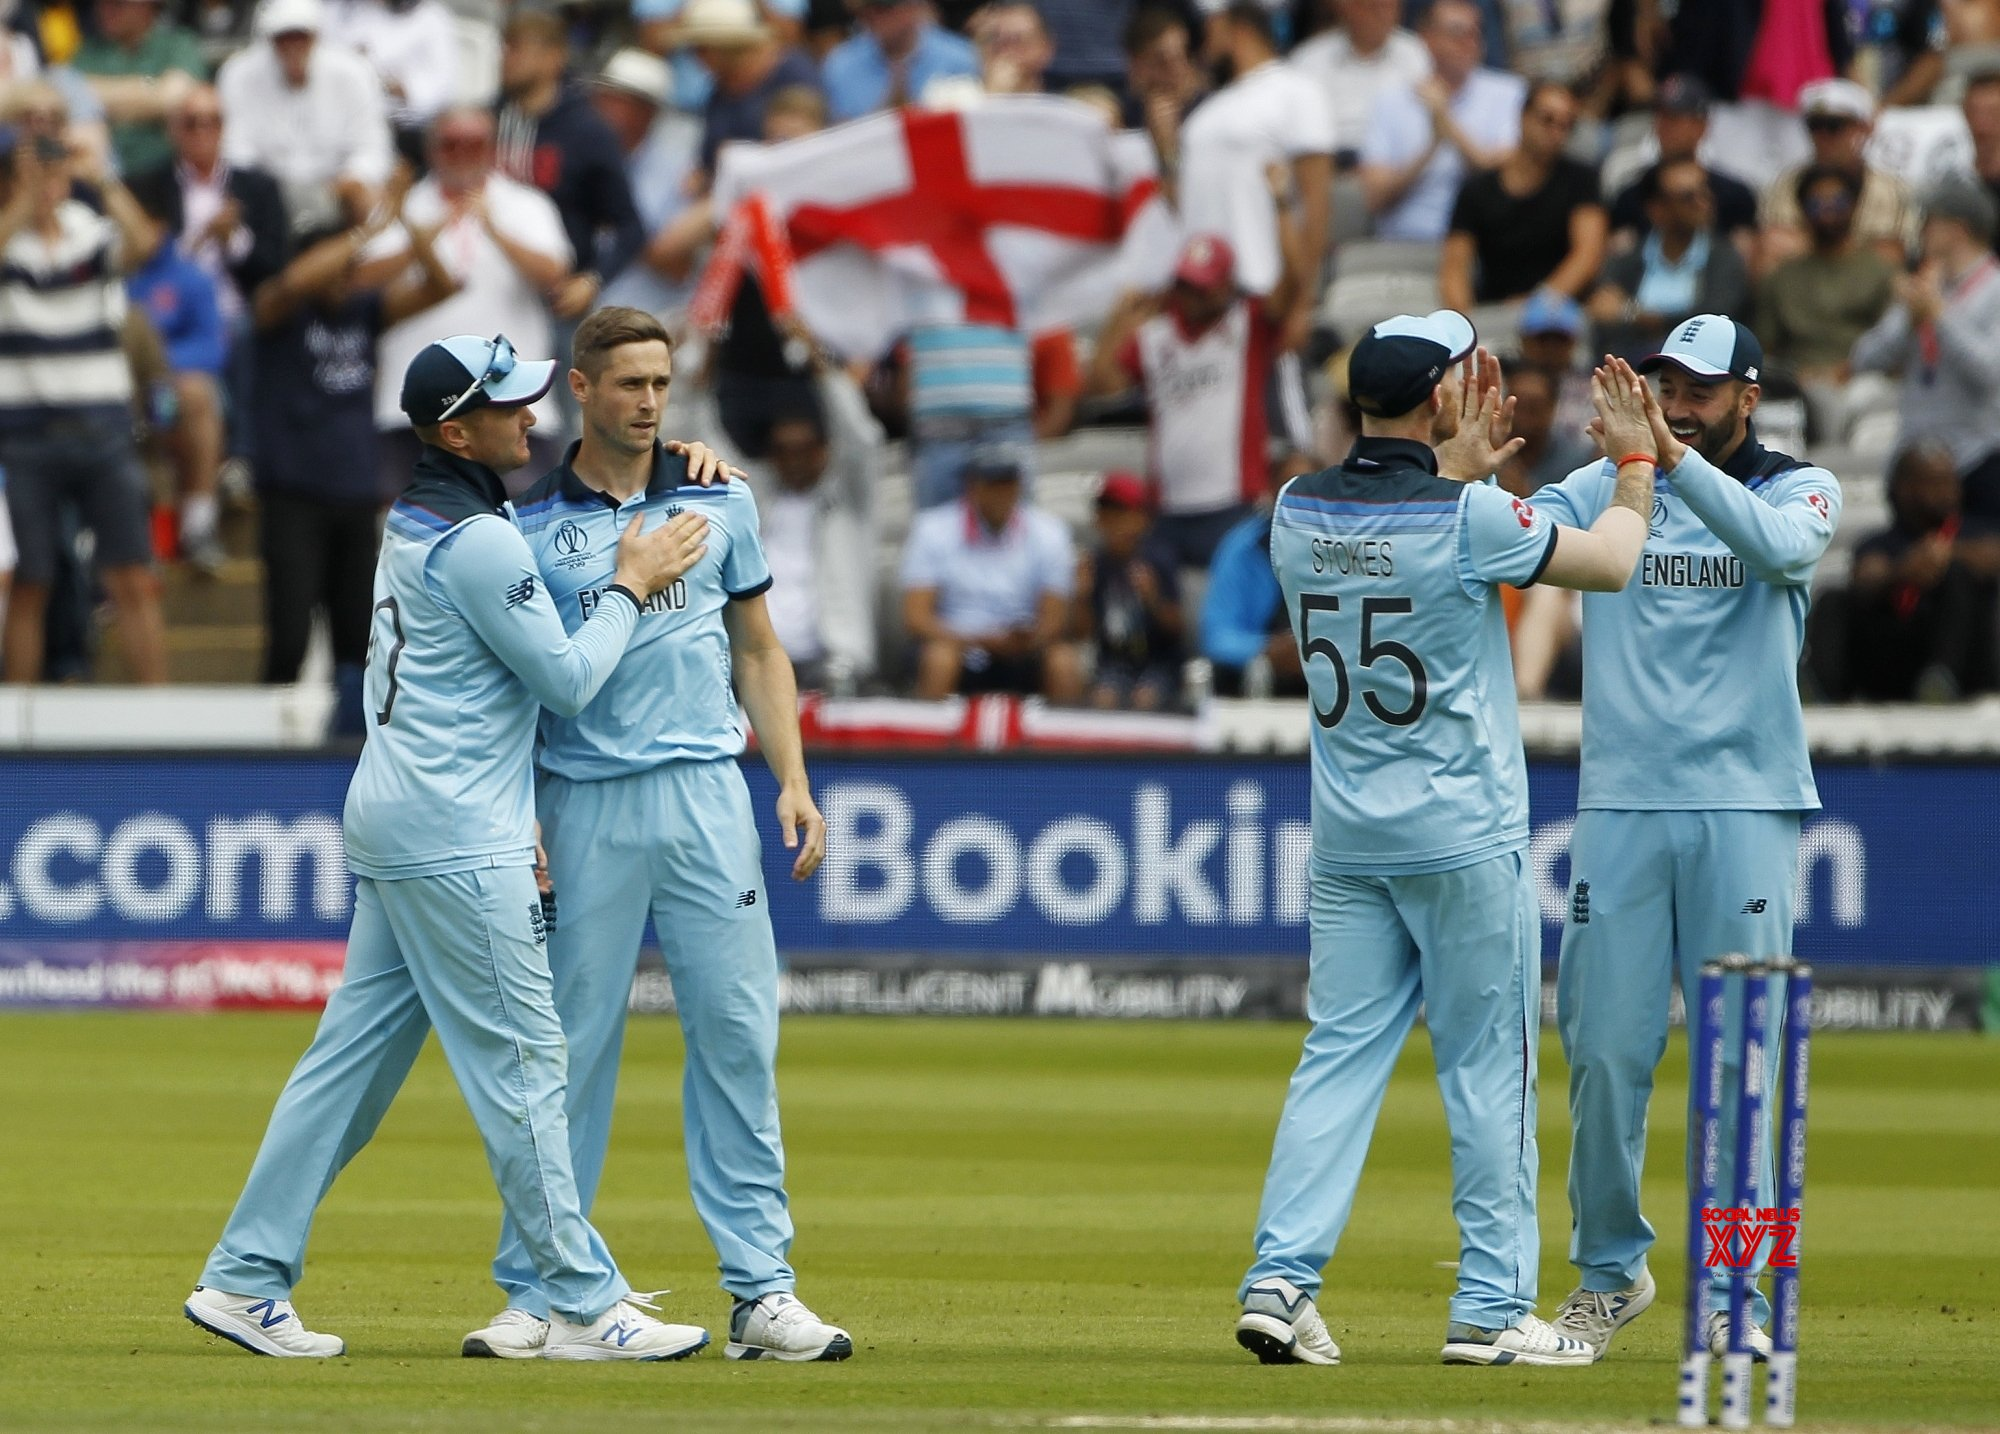 London (England): 2019 World Cup - Final - New Zealand Vs England (Batch - 25) #Gallery